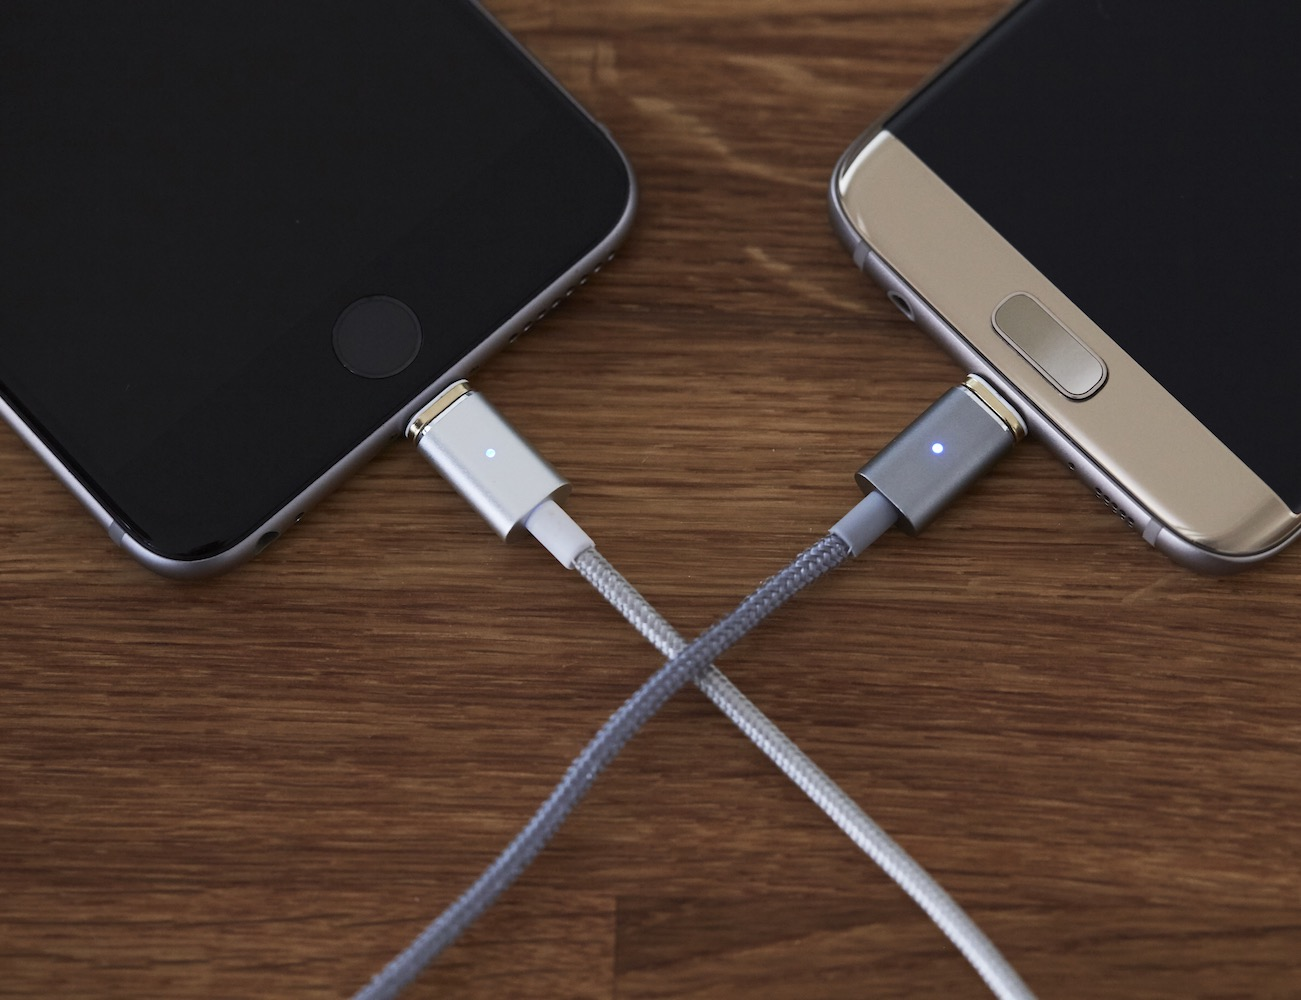 ASAP Connect – The Future of USB Cables